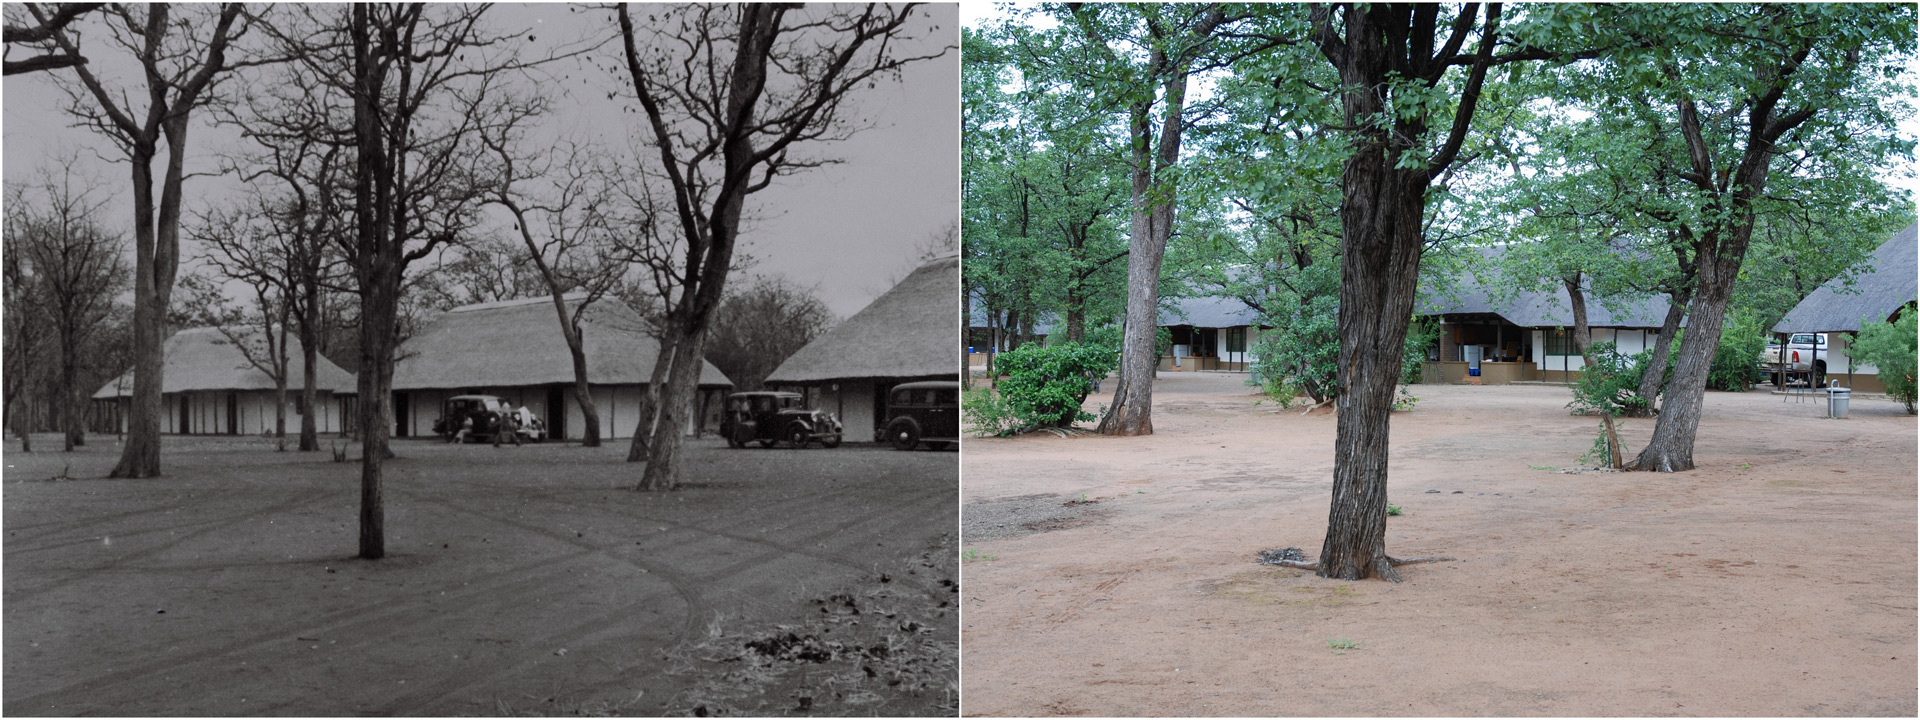 Then and now at Shingwedzi Camp in 1935 and present